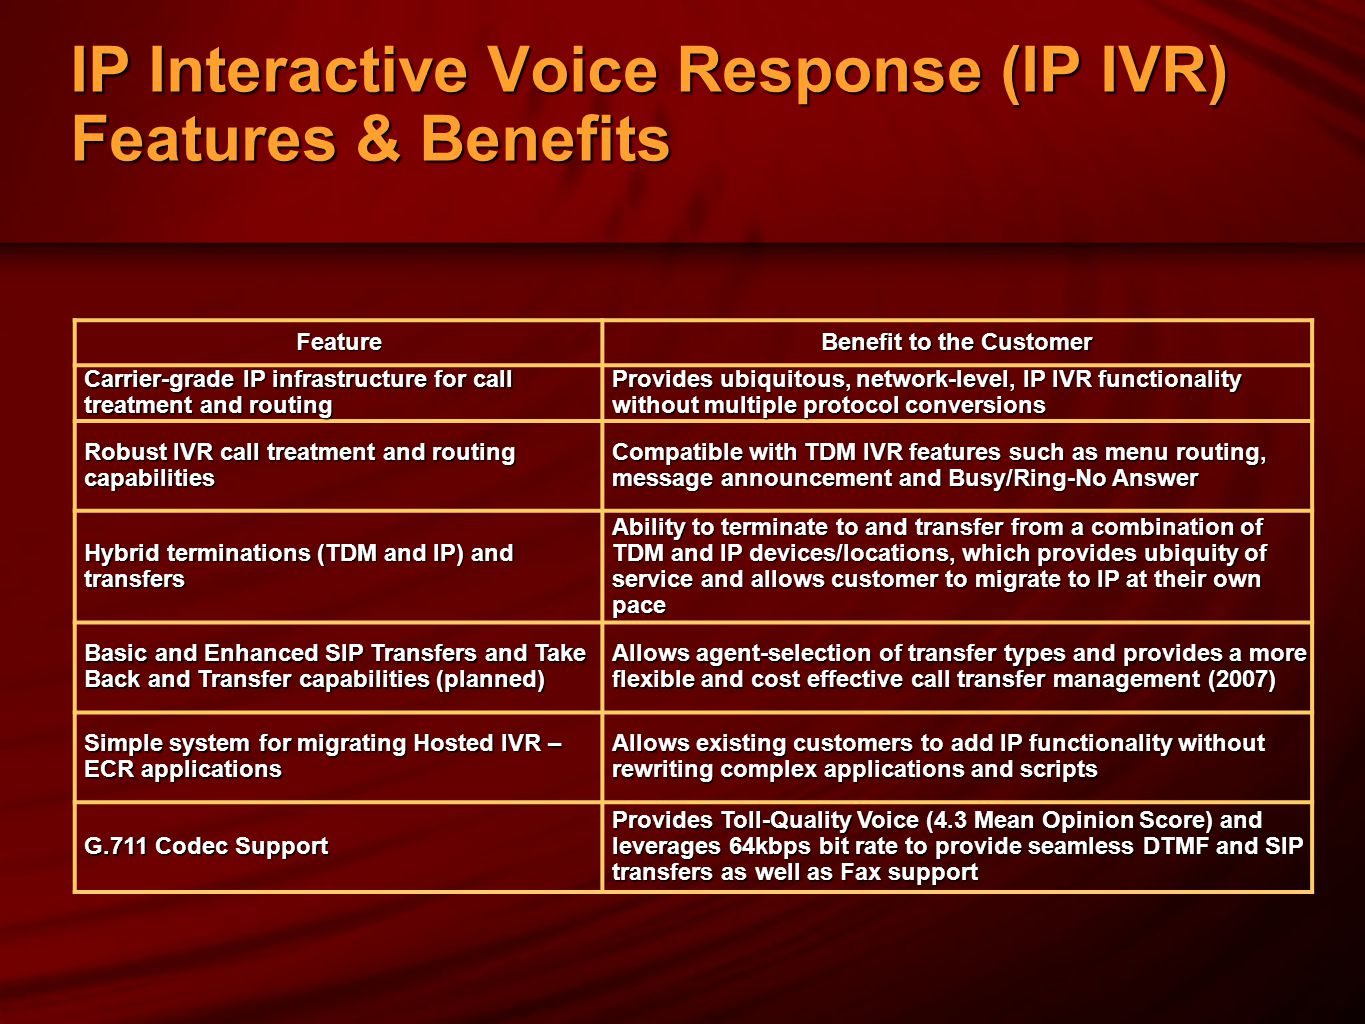 IP Interactive Voice Response (IP IVR) Features & Benefits Feature Benefit to the Customer Carrier-grade IP infrastructure for call treatment and routing Provides ubiquitous, network-level, IP IVR functionality without multiple protocol conversions Robust IVR call treatment and routing capabilities Compatible with TDM IVR features such as menu routing, message announcement and Busy/Ring-No Answer Hybrid terminations (TDM and IP) and transfers Ability to terminate to and transfer from a combination of TDM and IP devices/locations, which provides ubiquity of service and allows customer to migrate to IP at their own pace Basic and Enhanced SIP Transfers and Take Back and Transfer capabilities (planned) Allows agent-selection of transfer types and provides a more flexible and cost effective call transfer management (2007) Simple system for migrating Hosted IVR – ECR applications Allows existing customers to add IP functionality without rewriting complex applications and scripts G.711 Codec Support Provides Toll-Quality Voice (4.3 Mean Opinion Score) and leverages 64kbps bit rate to provide seamless DTMF and SIP transfers as well as Fax support